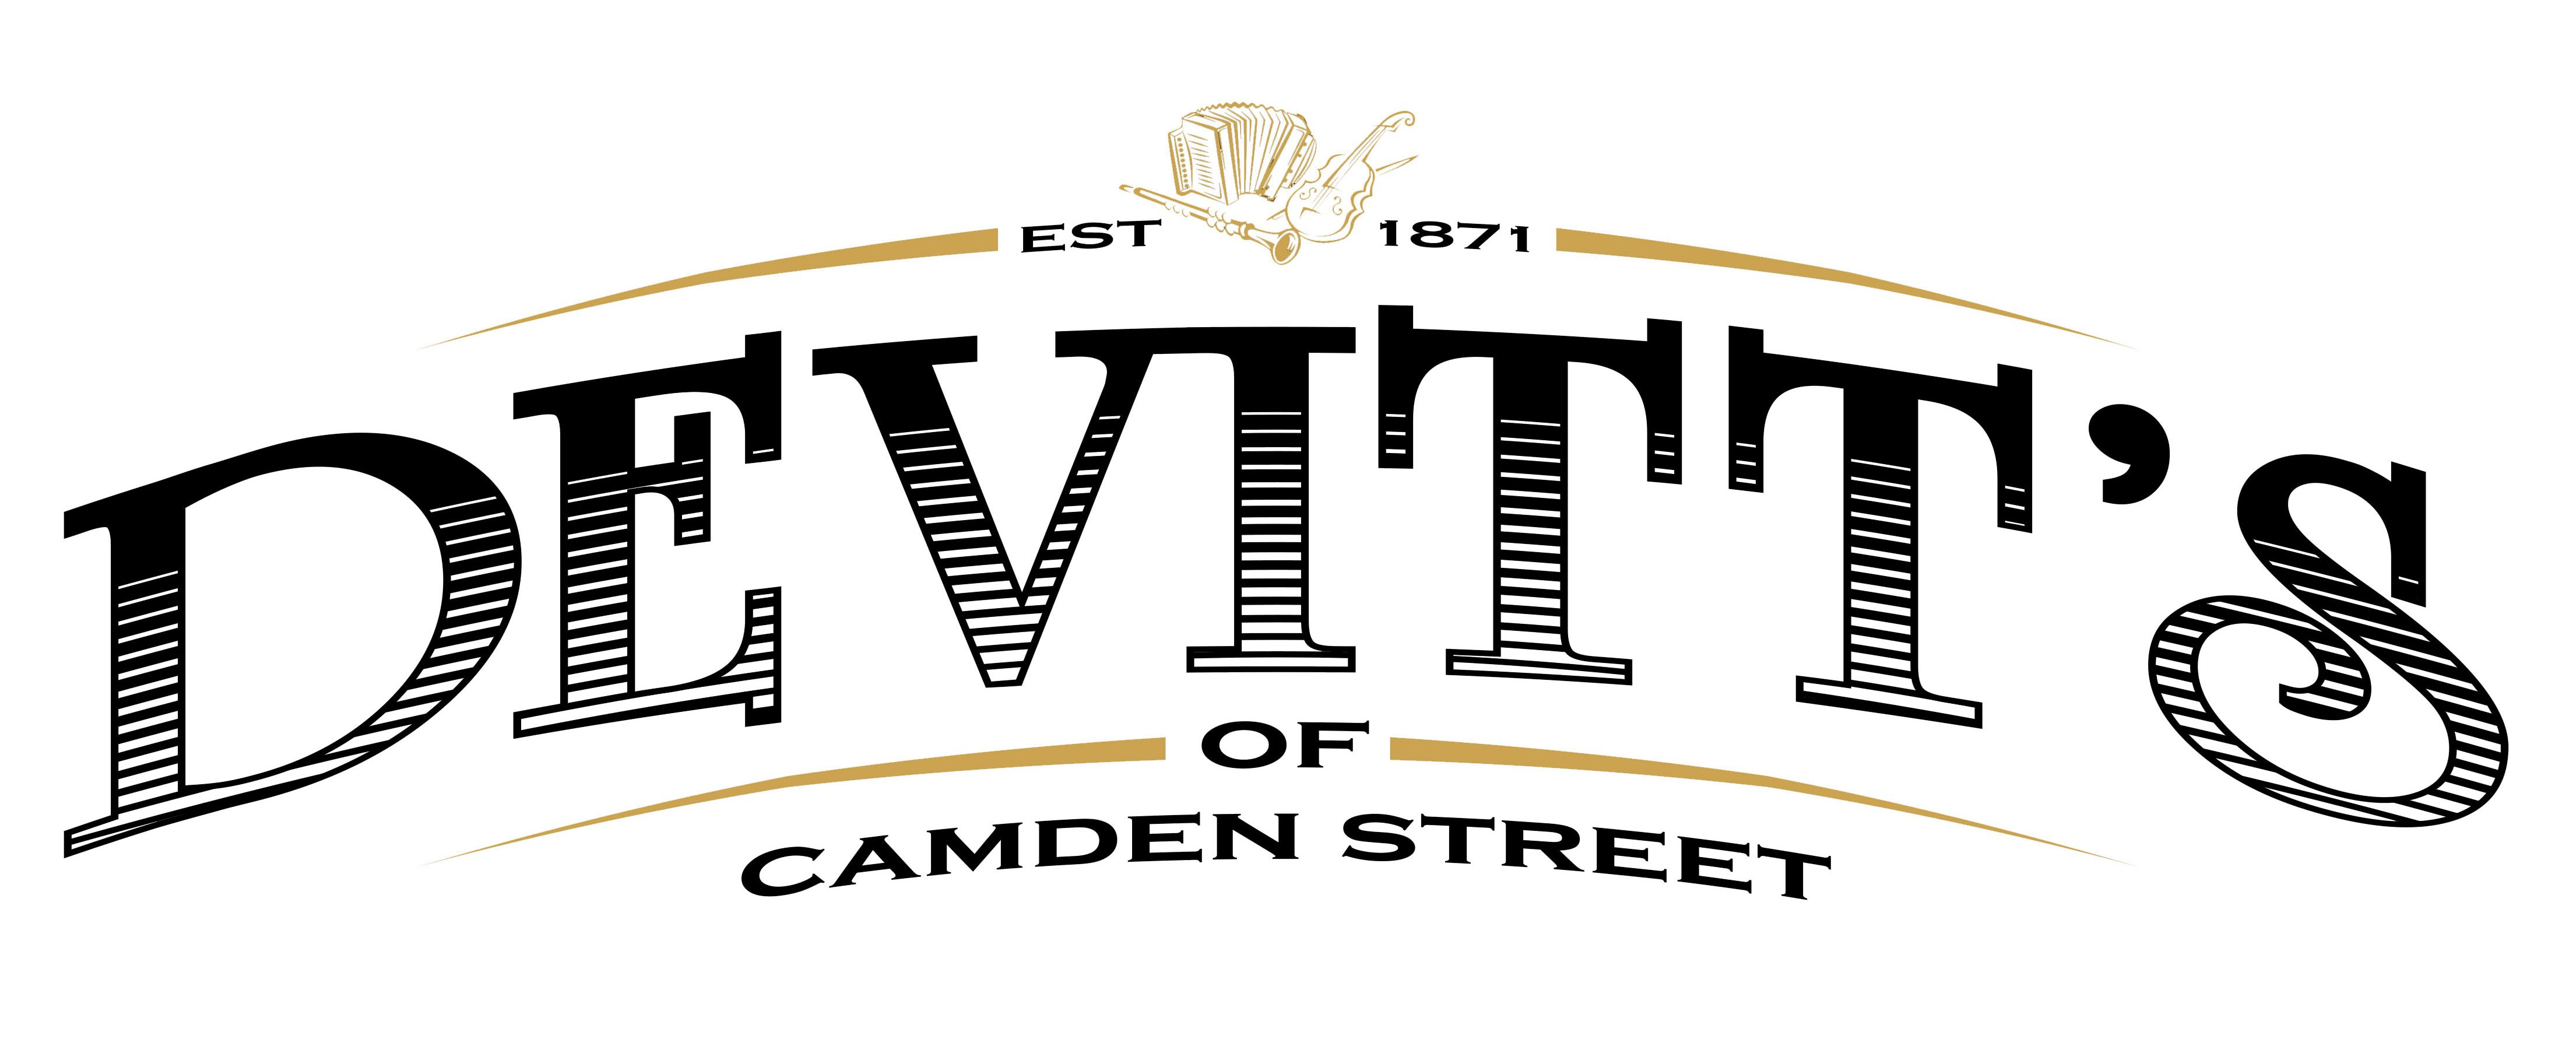 Devitts of Camden Street